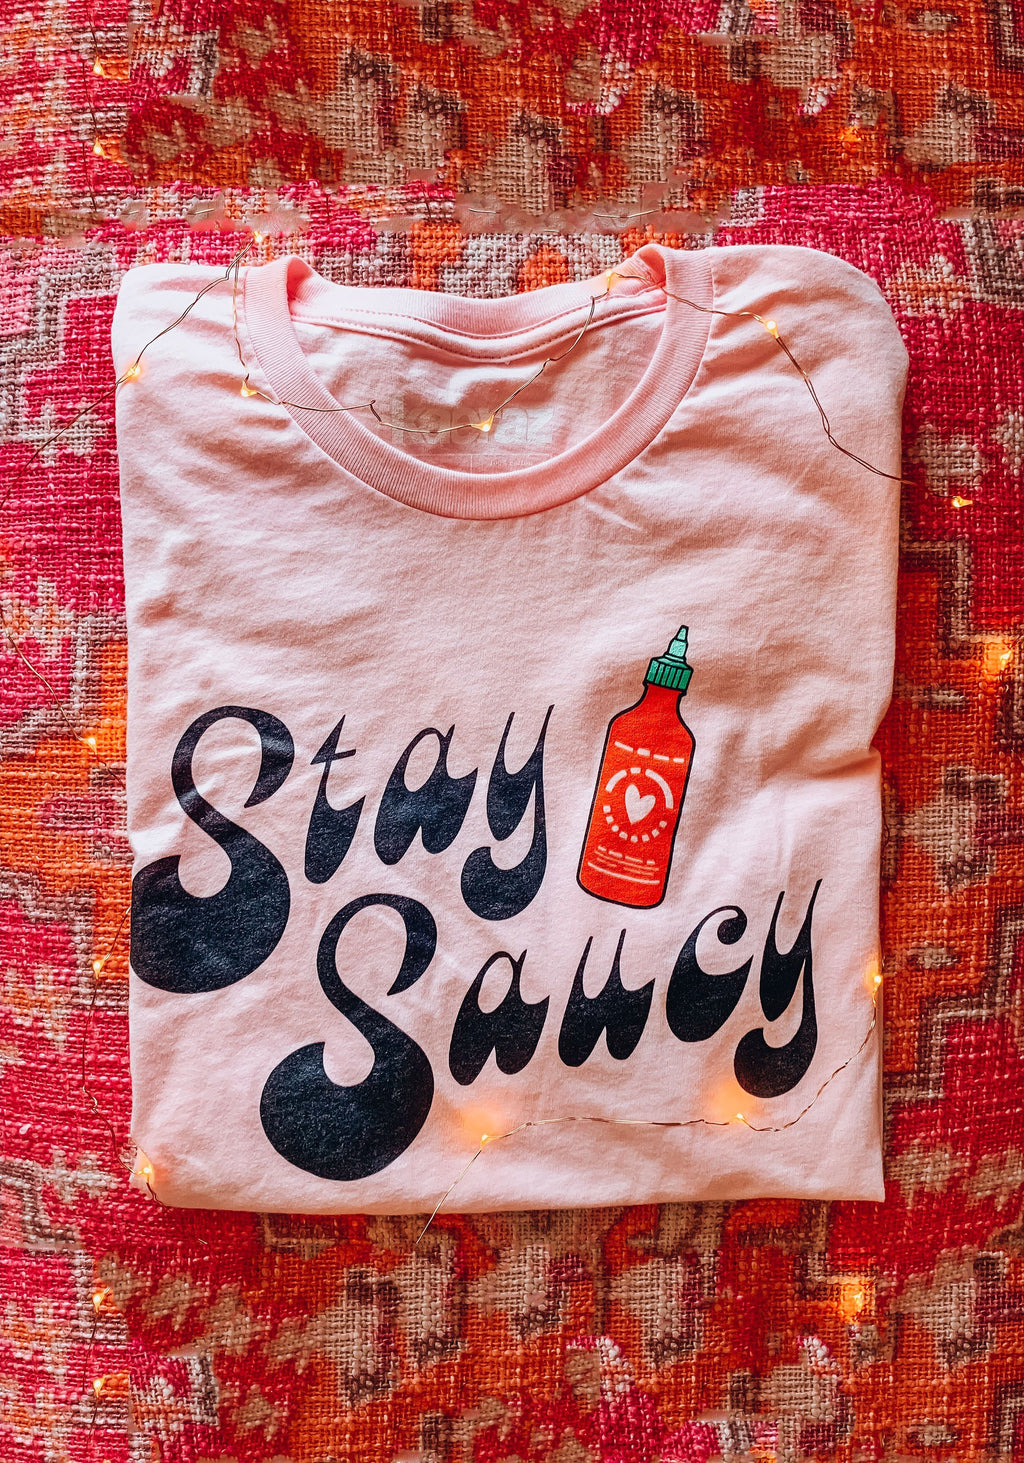 Stay Saucy Tee / womens graphic tees / sriracha cholula hot sauce shirt / spicy food snack foodie gift tshirt